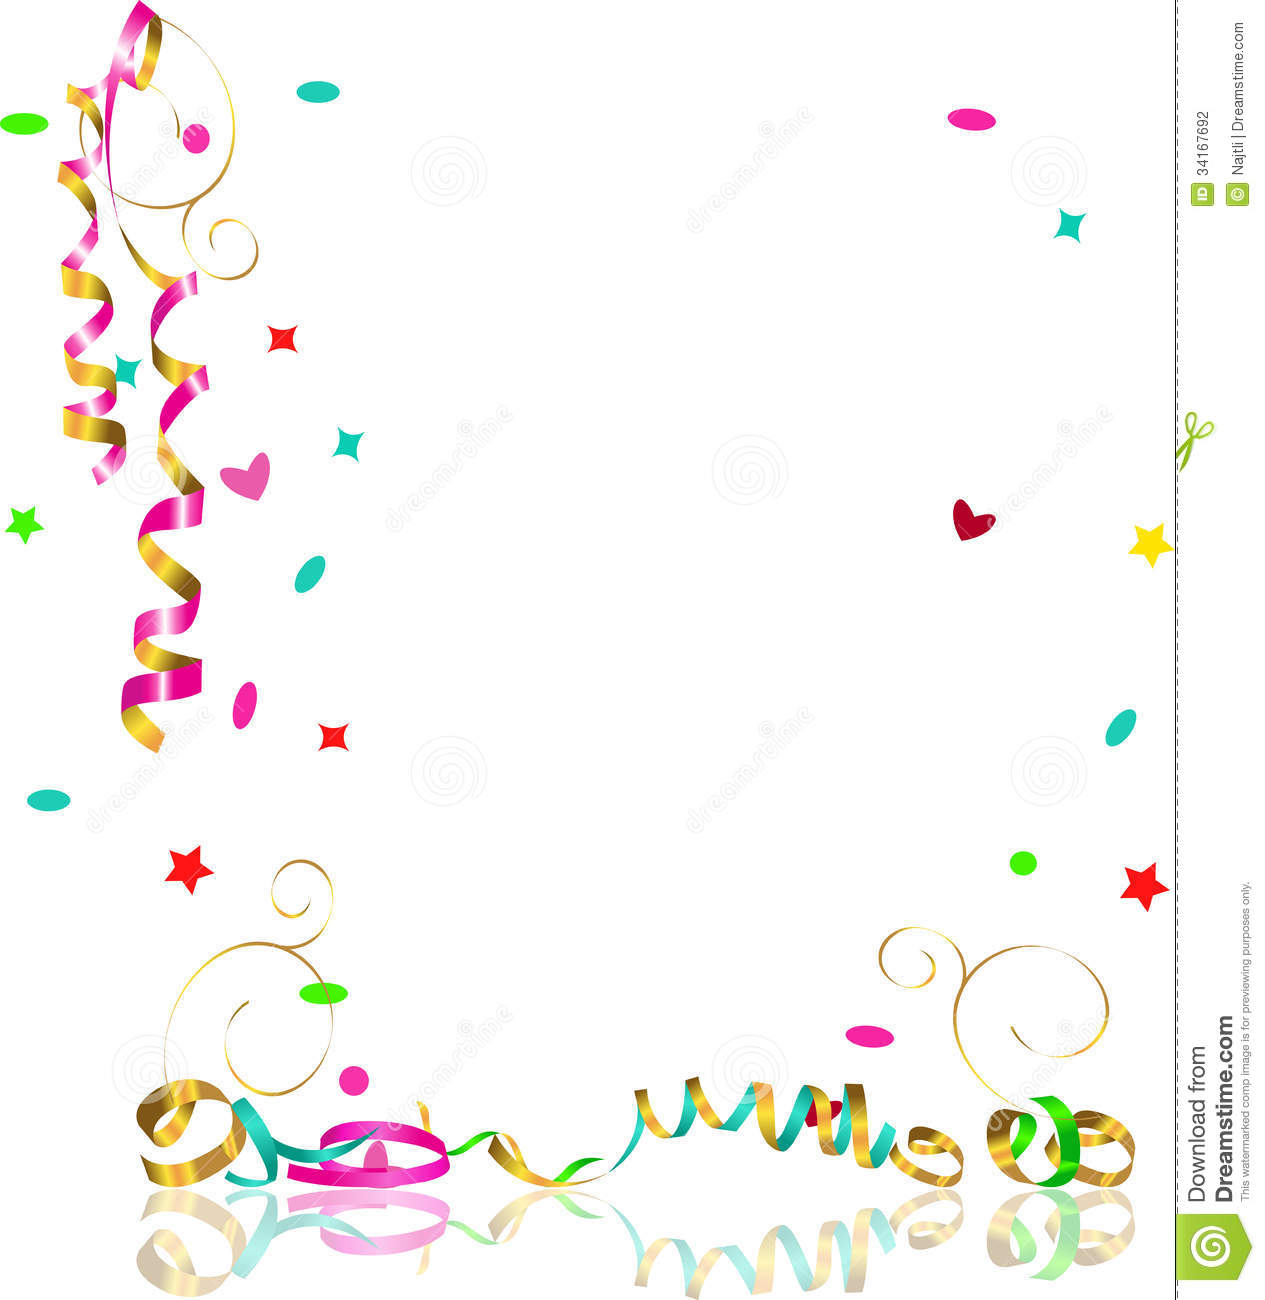 Falling Glitter Confetti Wallpapers Falling Streamers And Confetti Stock Vector Illustration